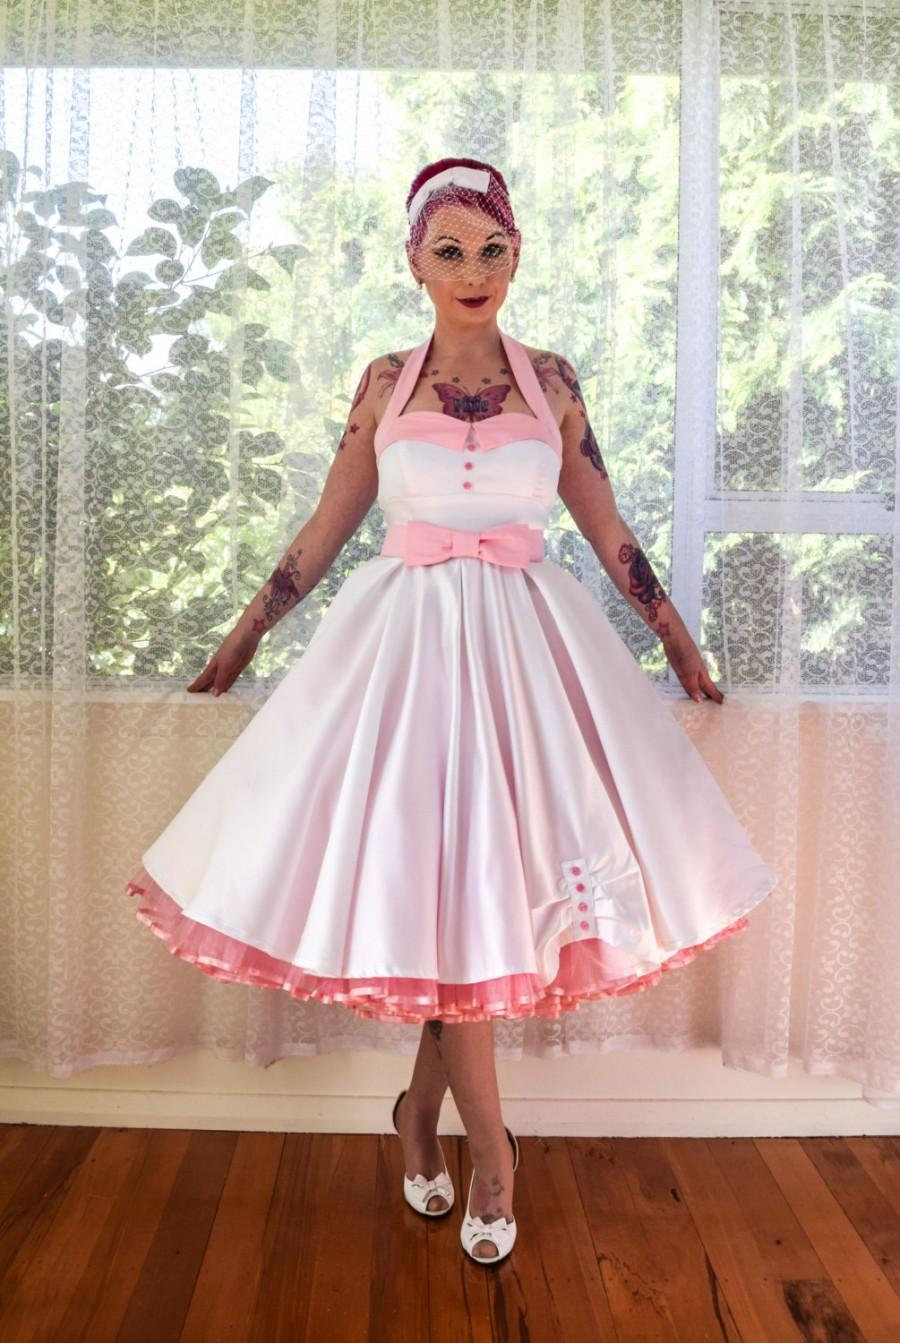 Hochzeit - 1950's Rockabilly 'Ruby' Wedding Dress with Lapels, Sash, Full Circle Tea Length Skirt and Petticoat - Custom Made to Fit